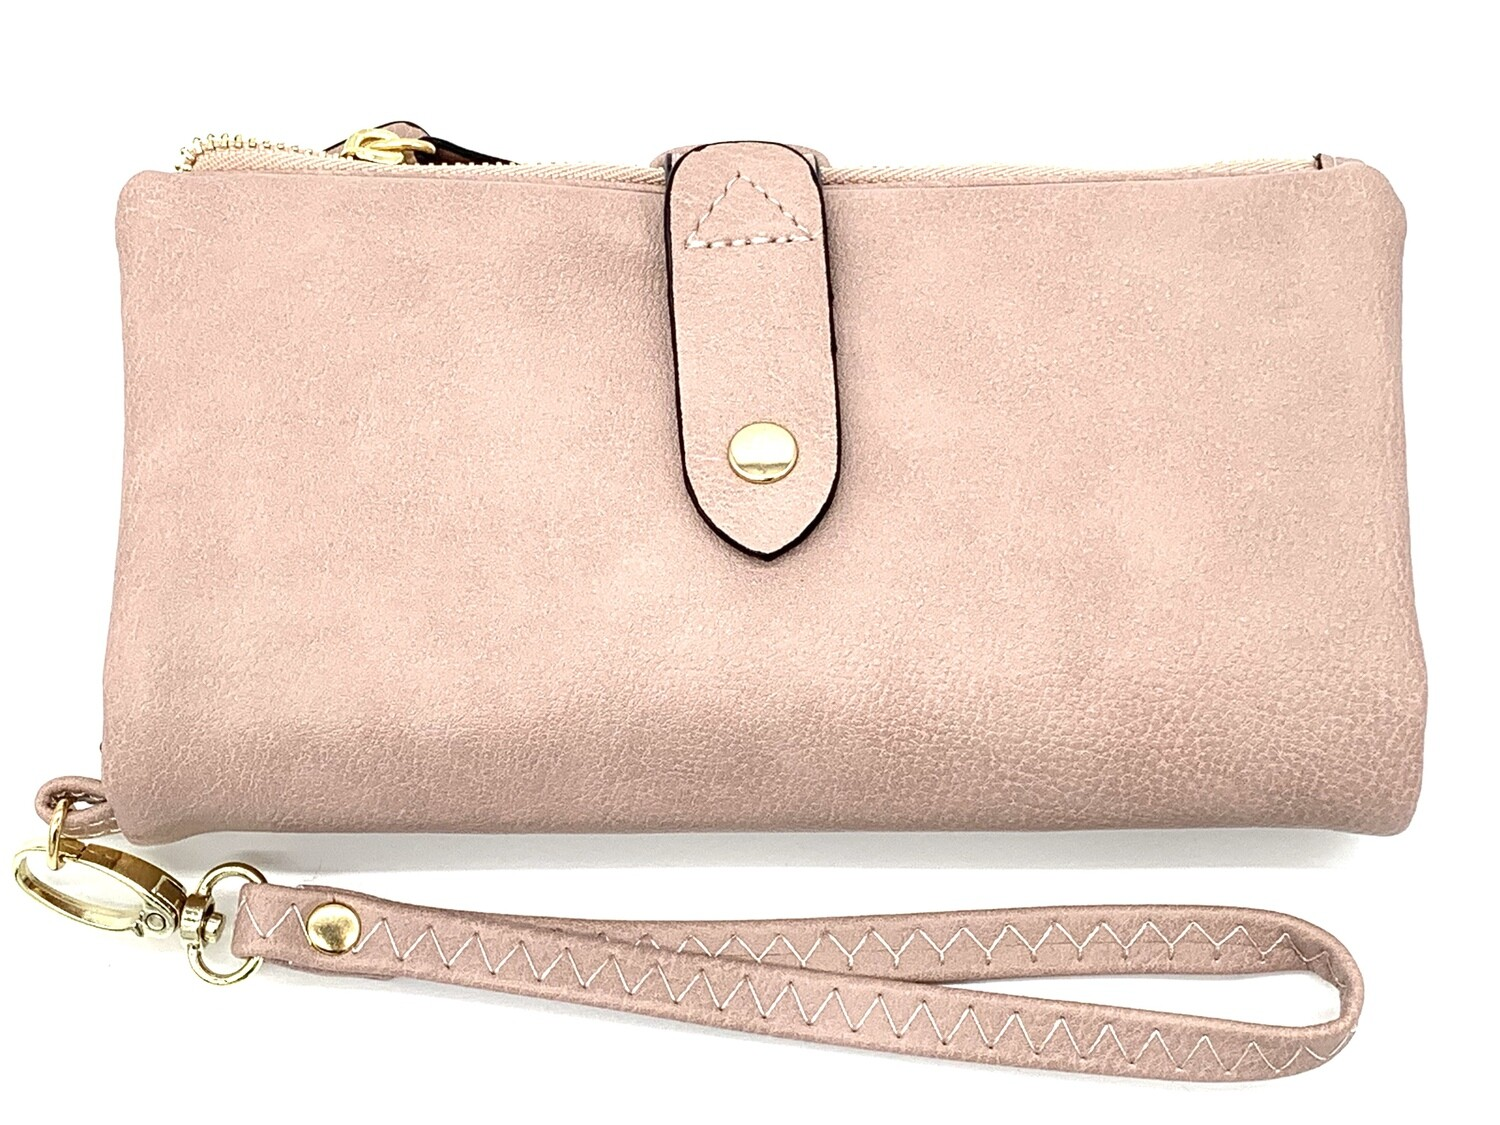 5268 Cell Phone Wristlet/Wallet dk pink